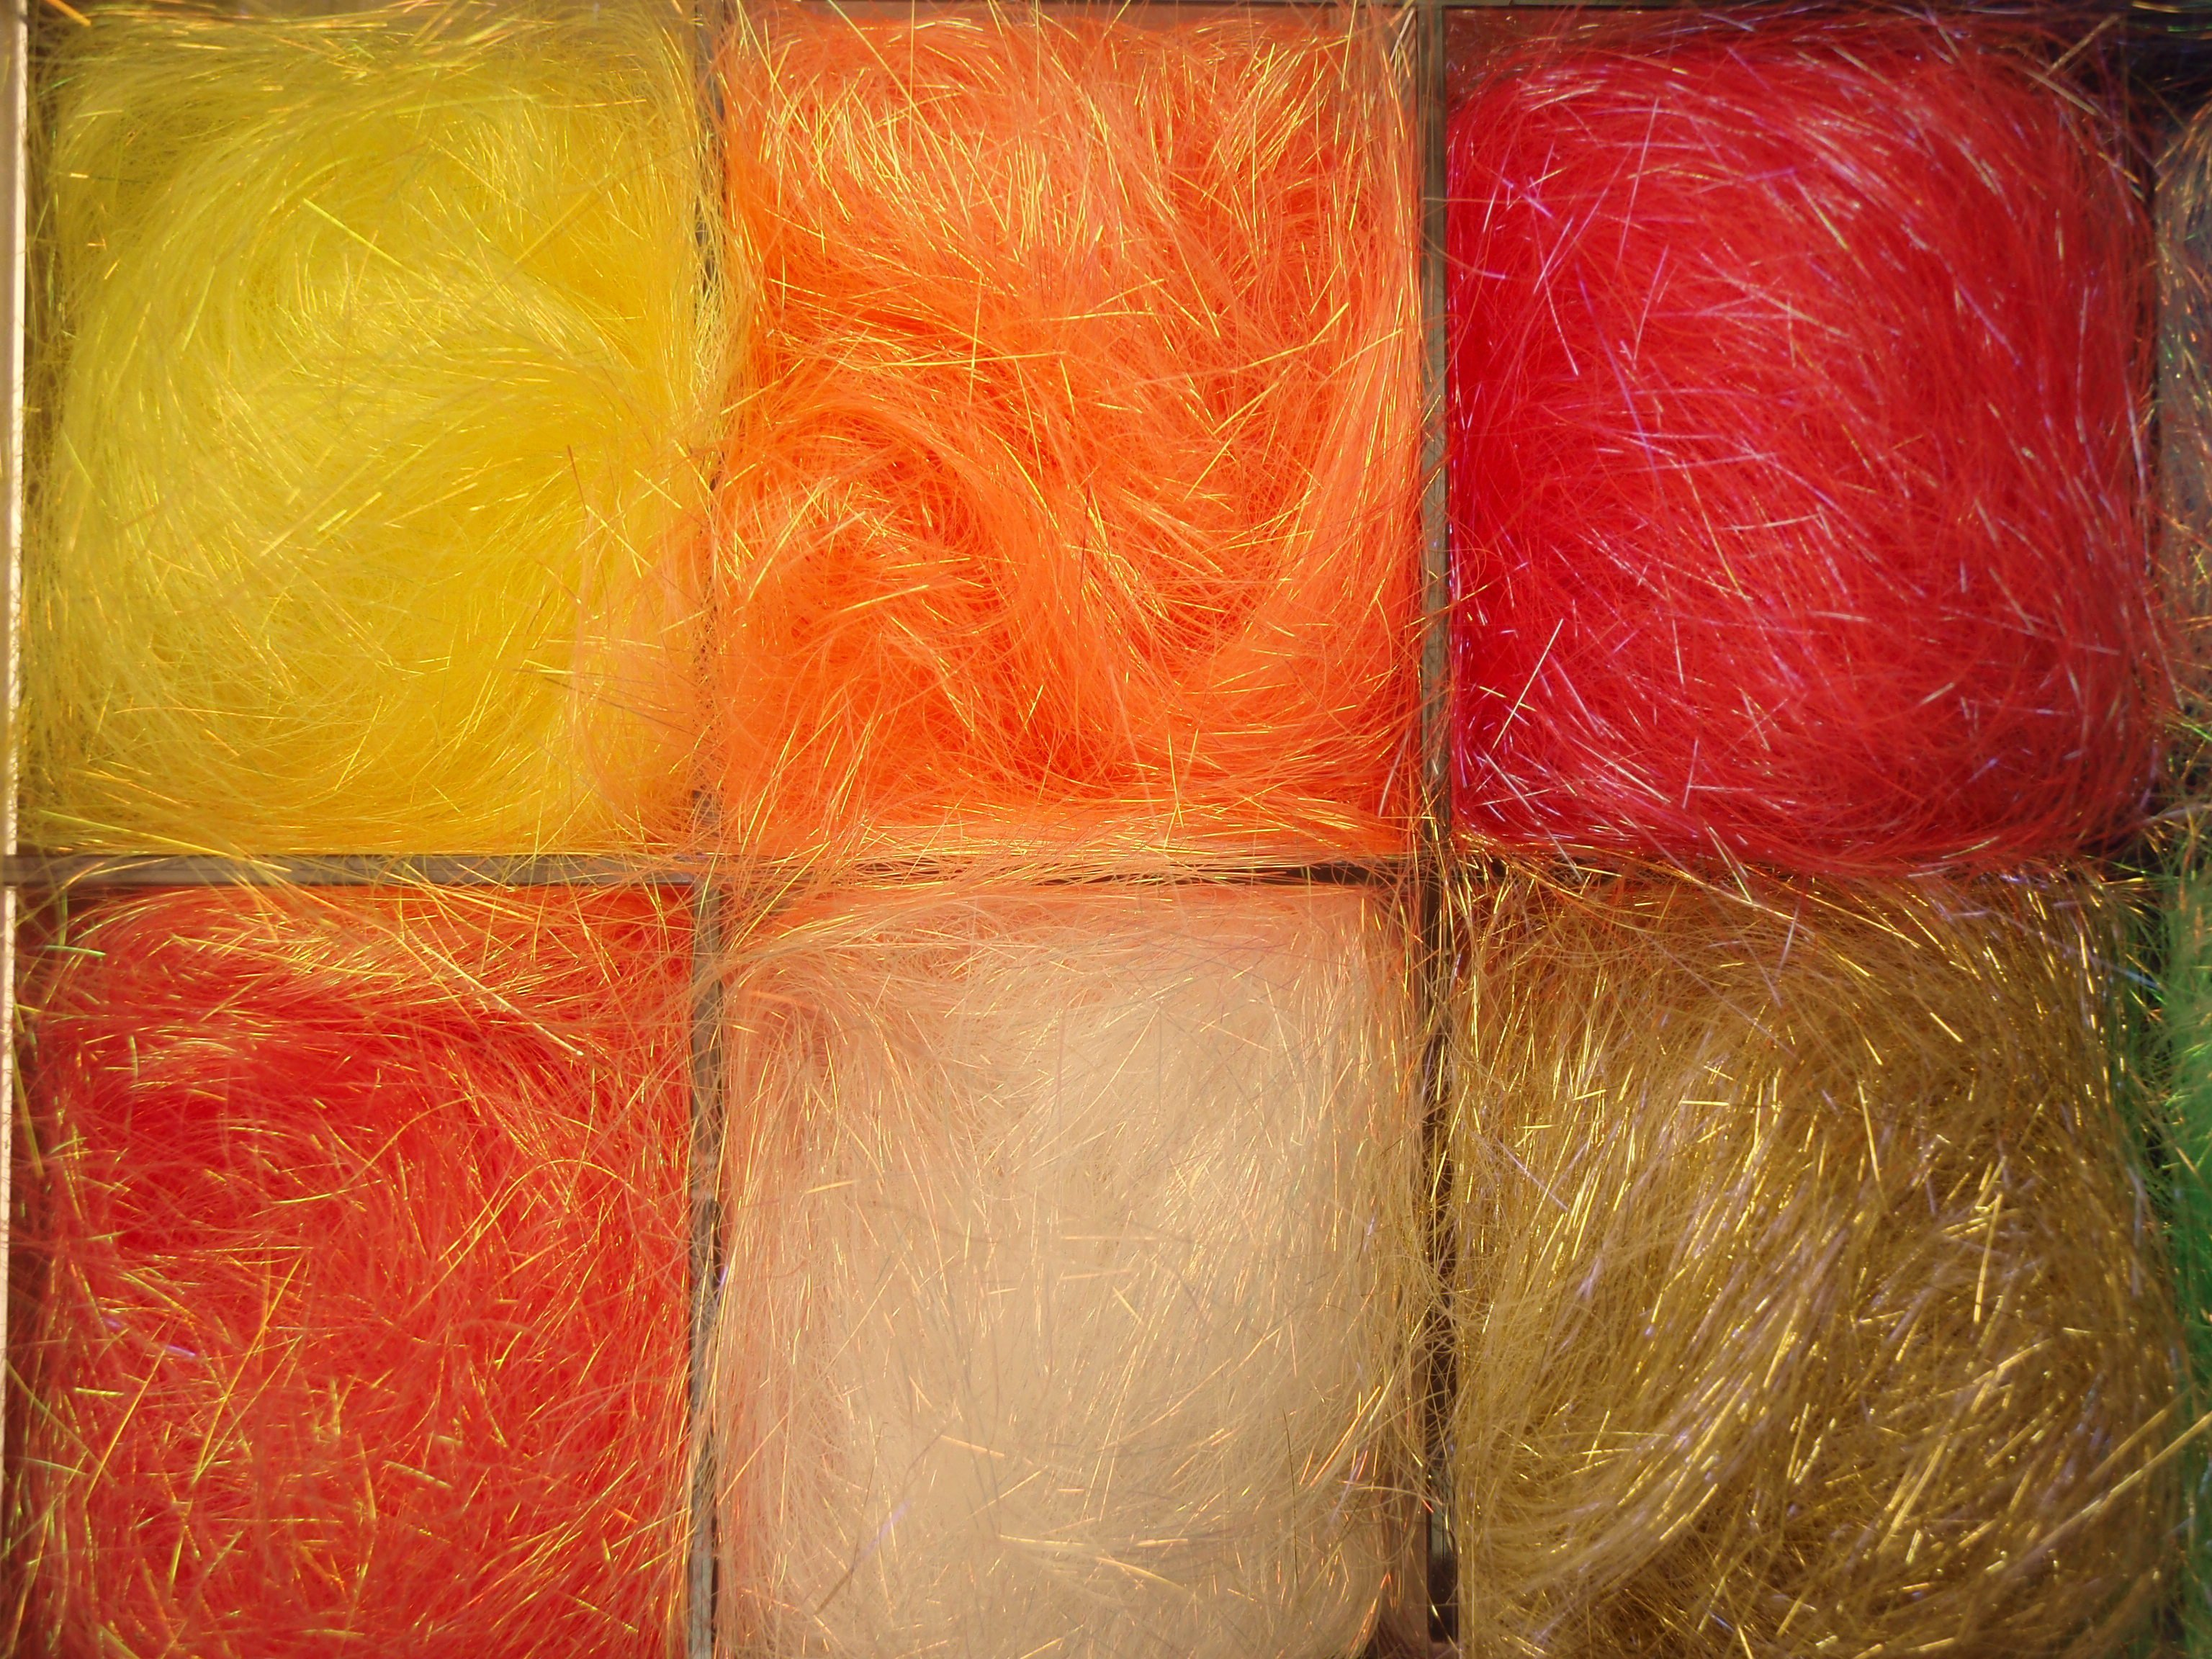 Angelina Fibres Warm Assortment Sampler Pack - 6 x 5g